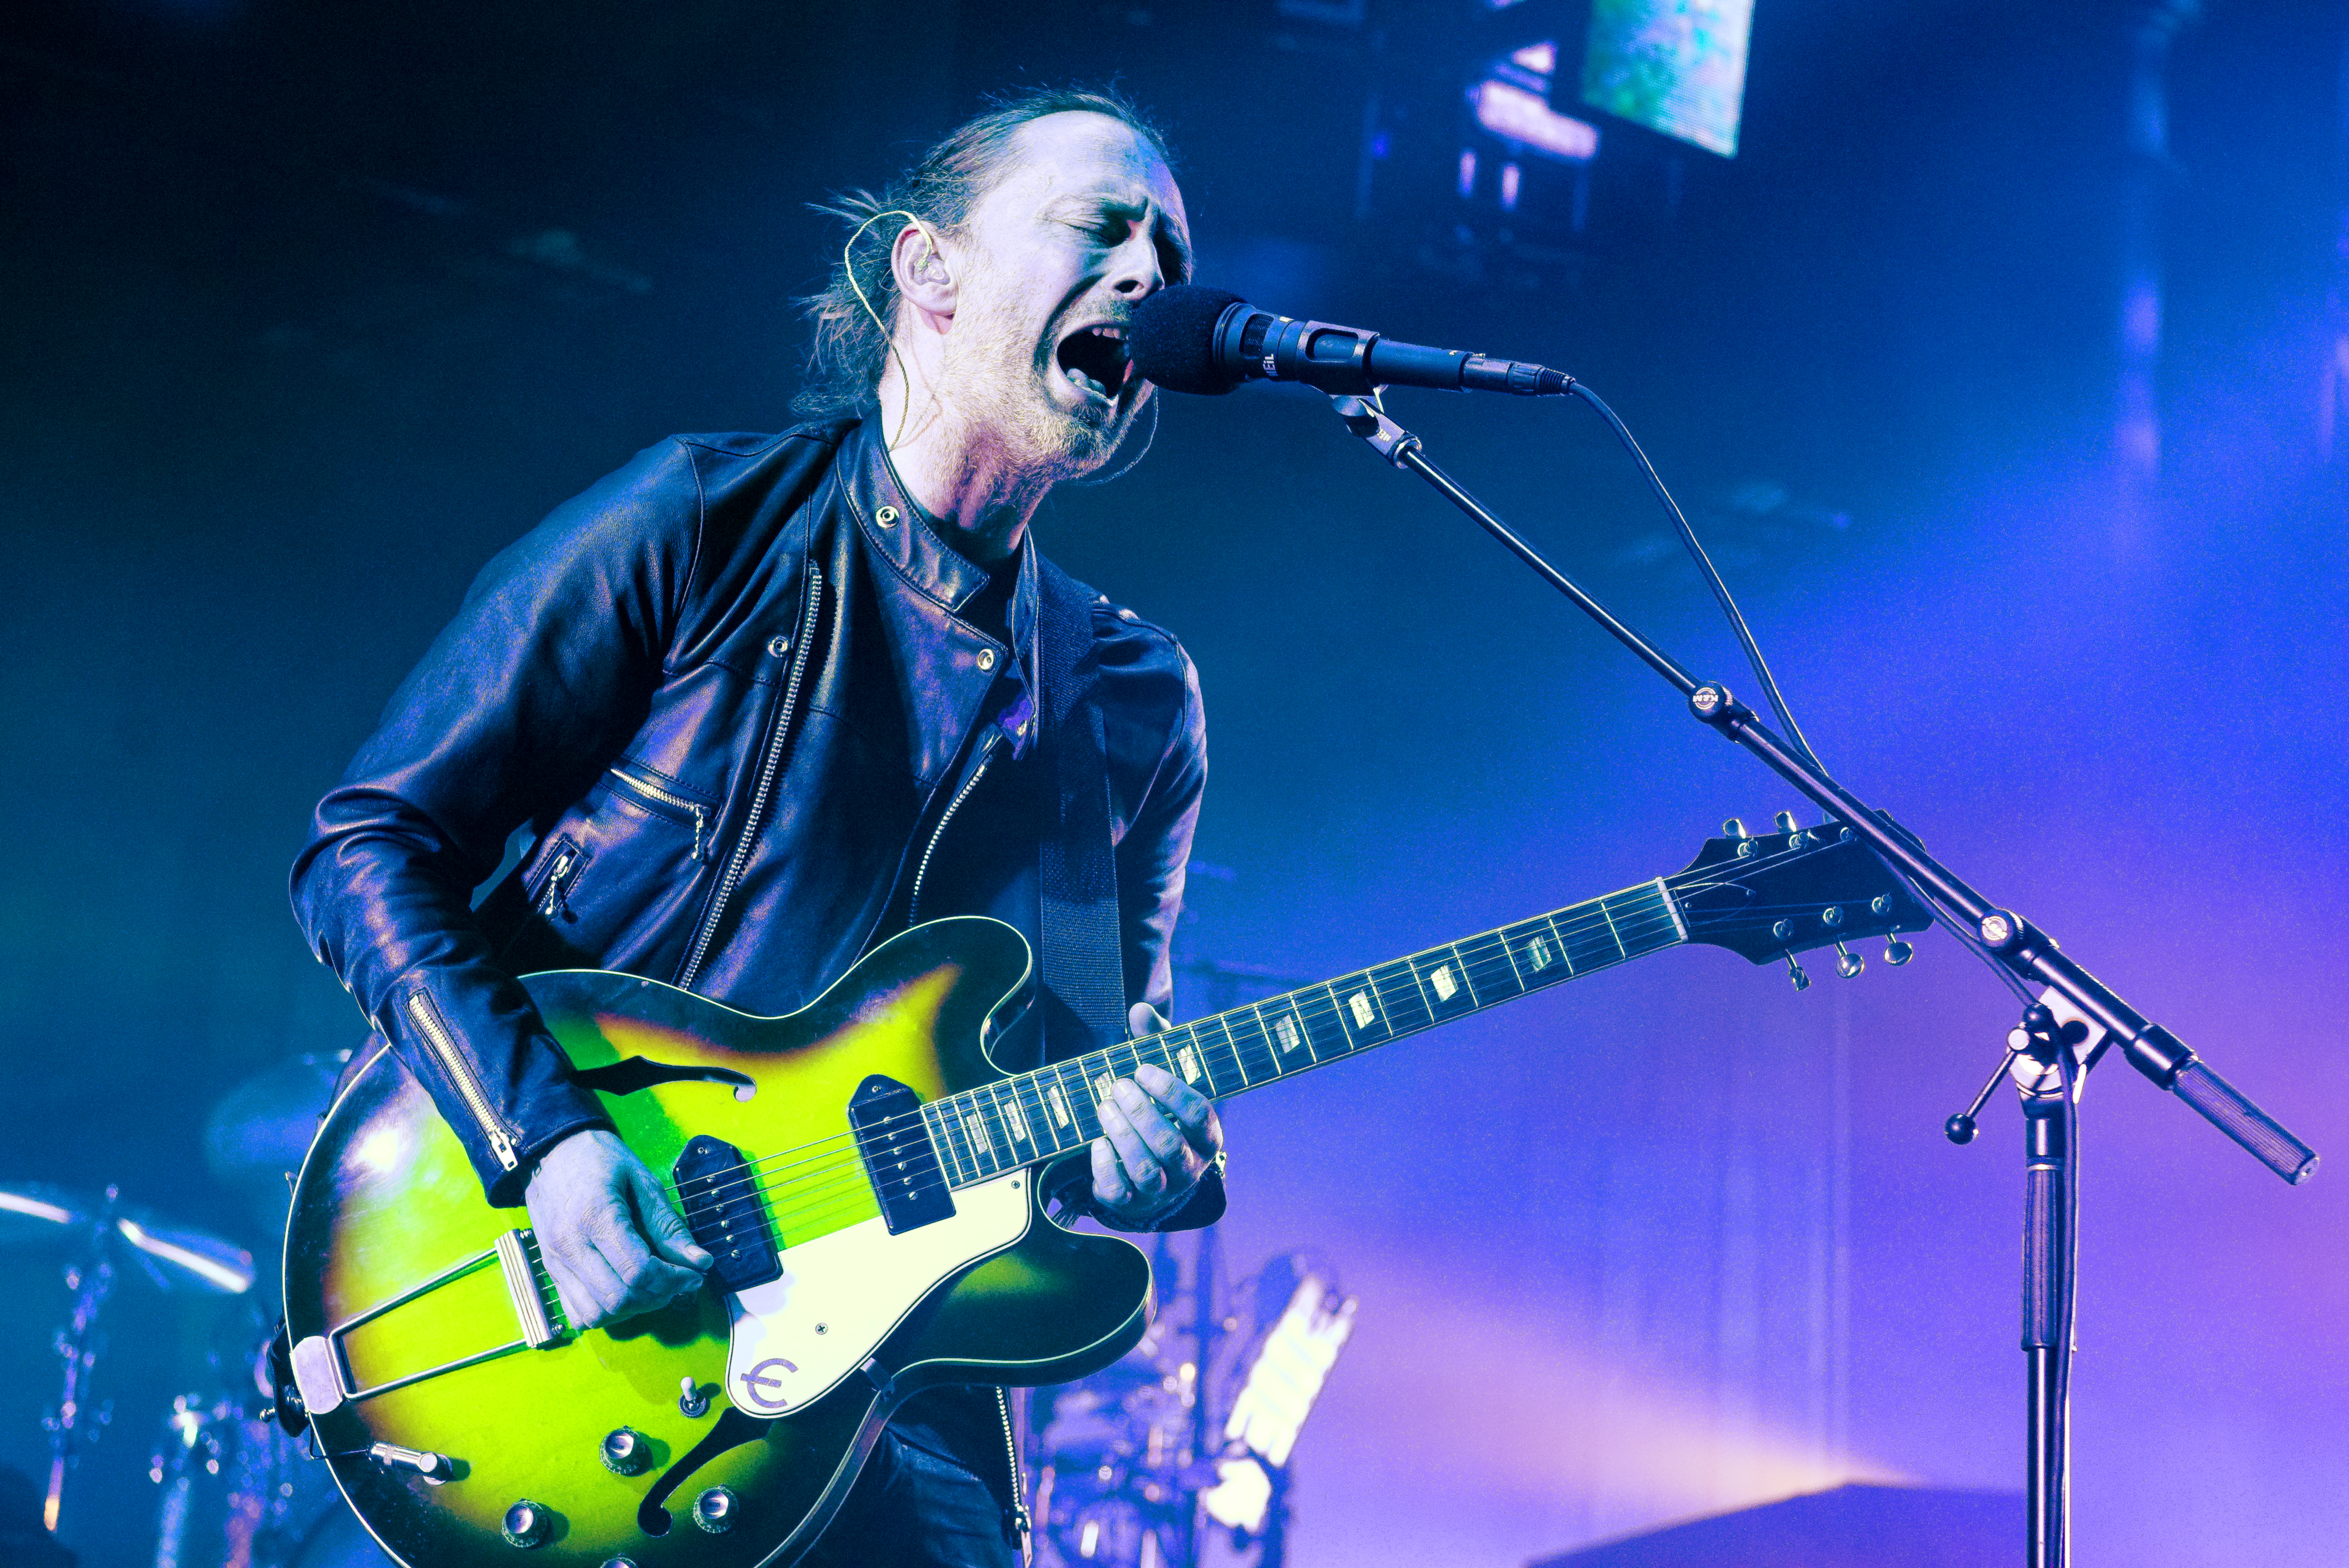 LONDON, ENGLAND - MAY 26: Thom Yorke of Radiohead performs at The Roundhouse on May 26, 2016 in London, England. (Photo by Matthew Baker/Getty Images)